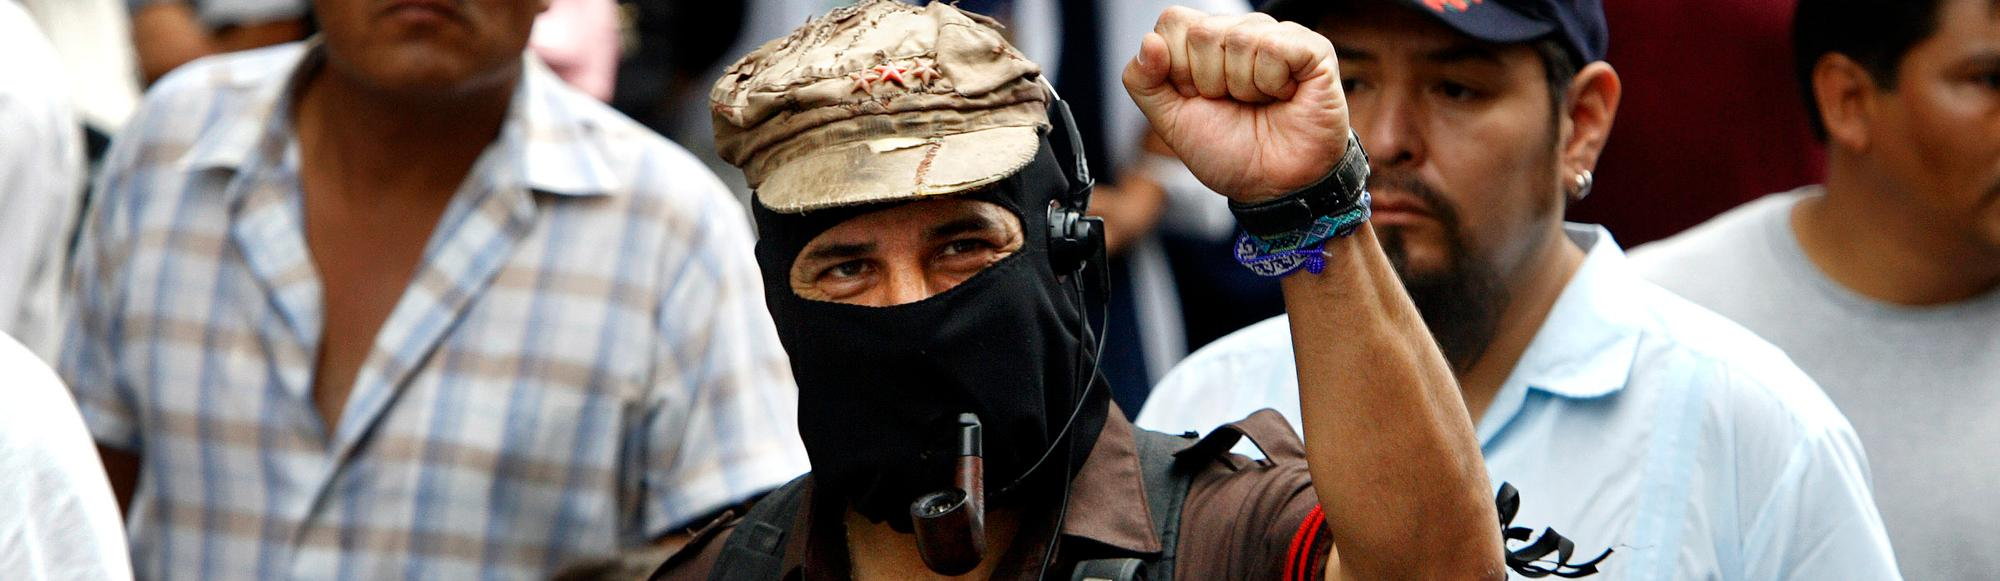 'Subcomandante Marcos No Longer Exists:' Zapatista Leader Retires His Nom de Guerre